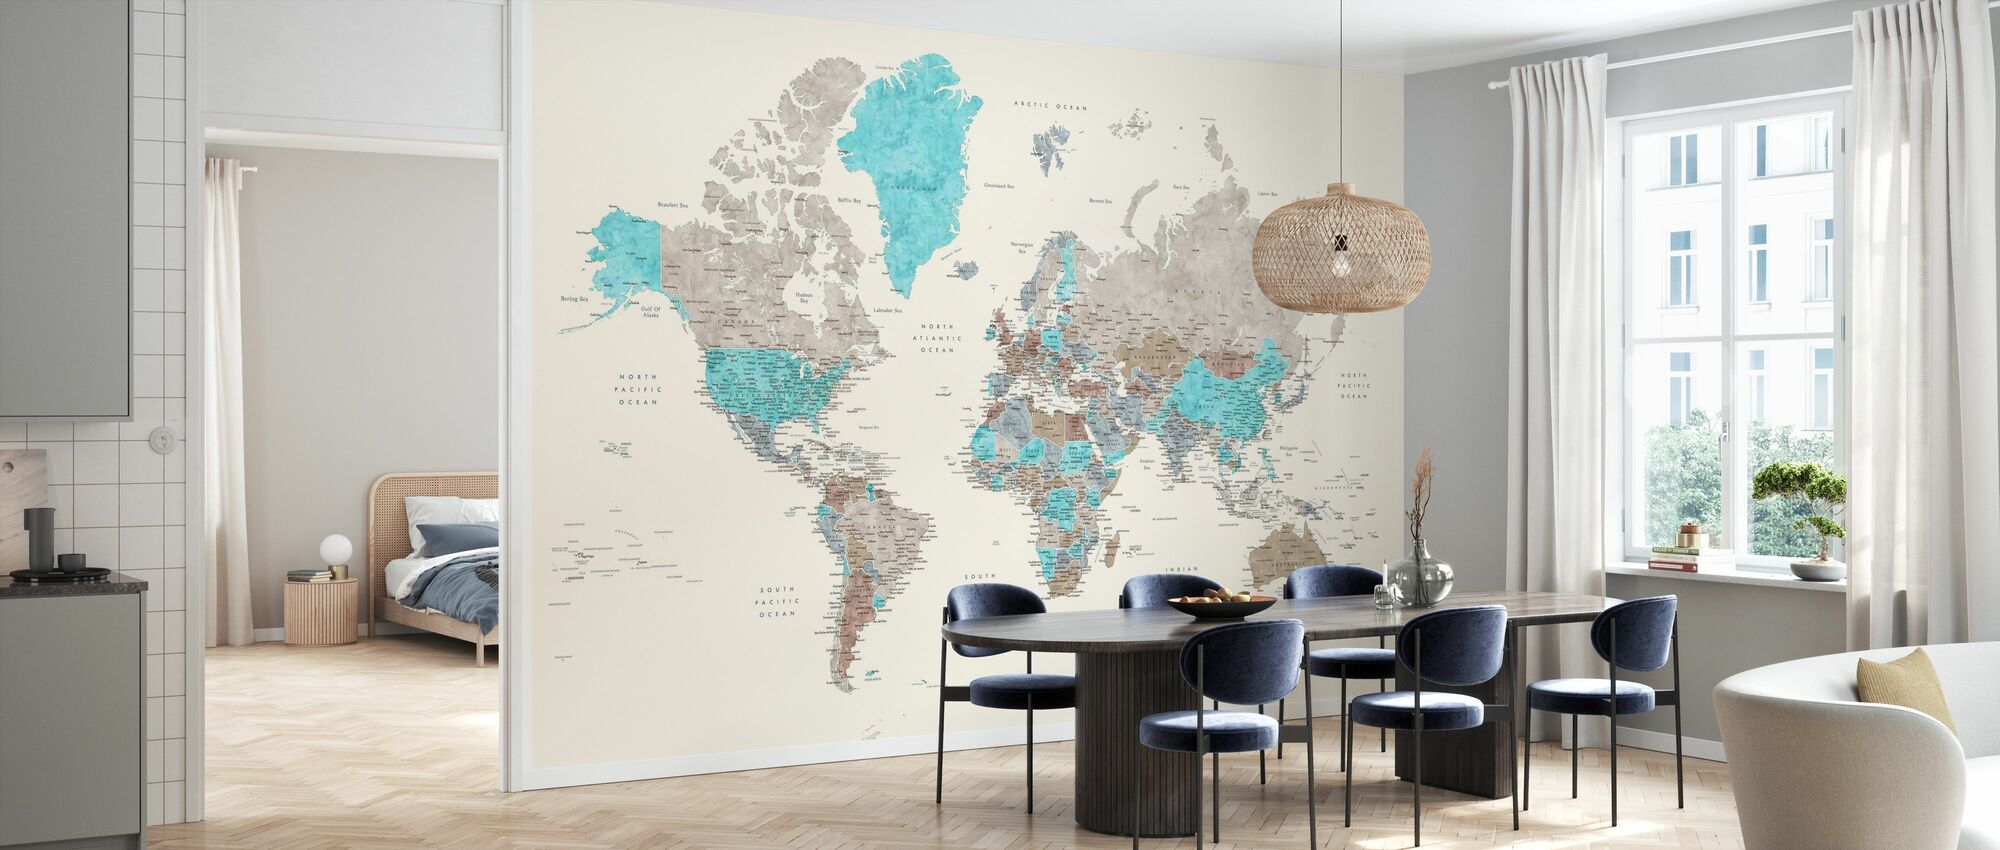 World Map with Cities - Wallpaper - Kitchen